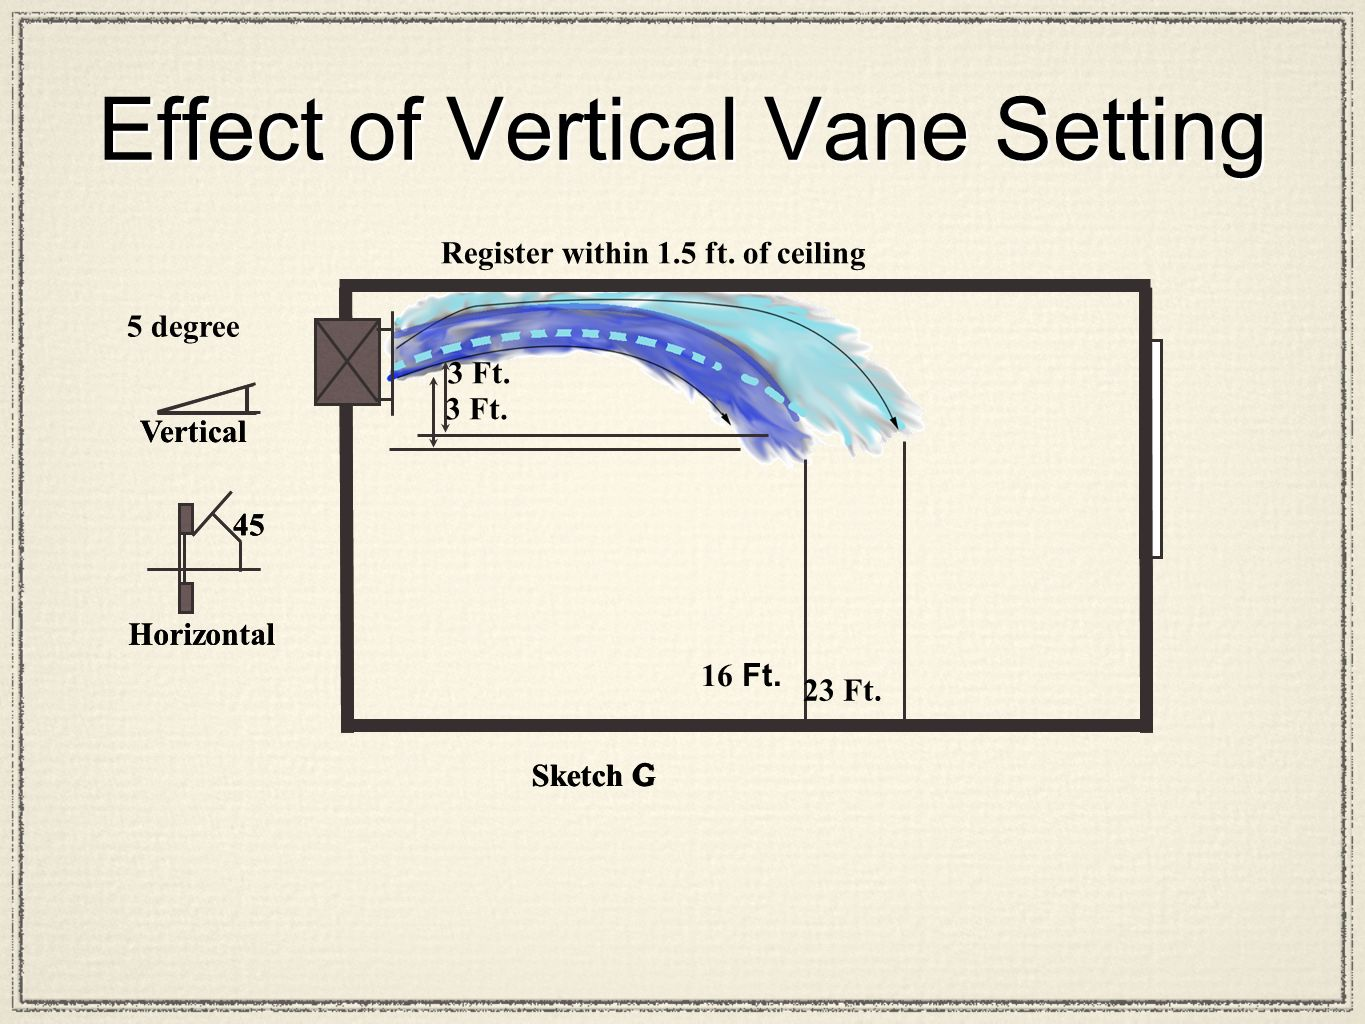 Effect of Vertical Vane Setting 3 Ft. 16 Ft. Sketch C Horizontal 5 degree Vertical 45 3 Ft.